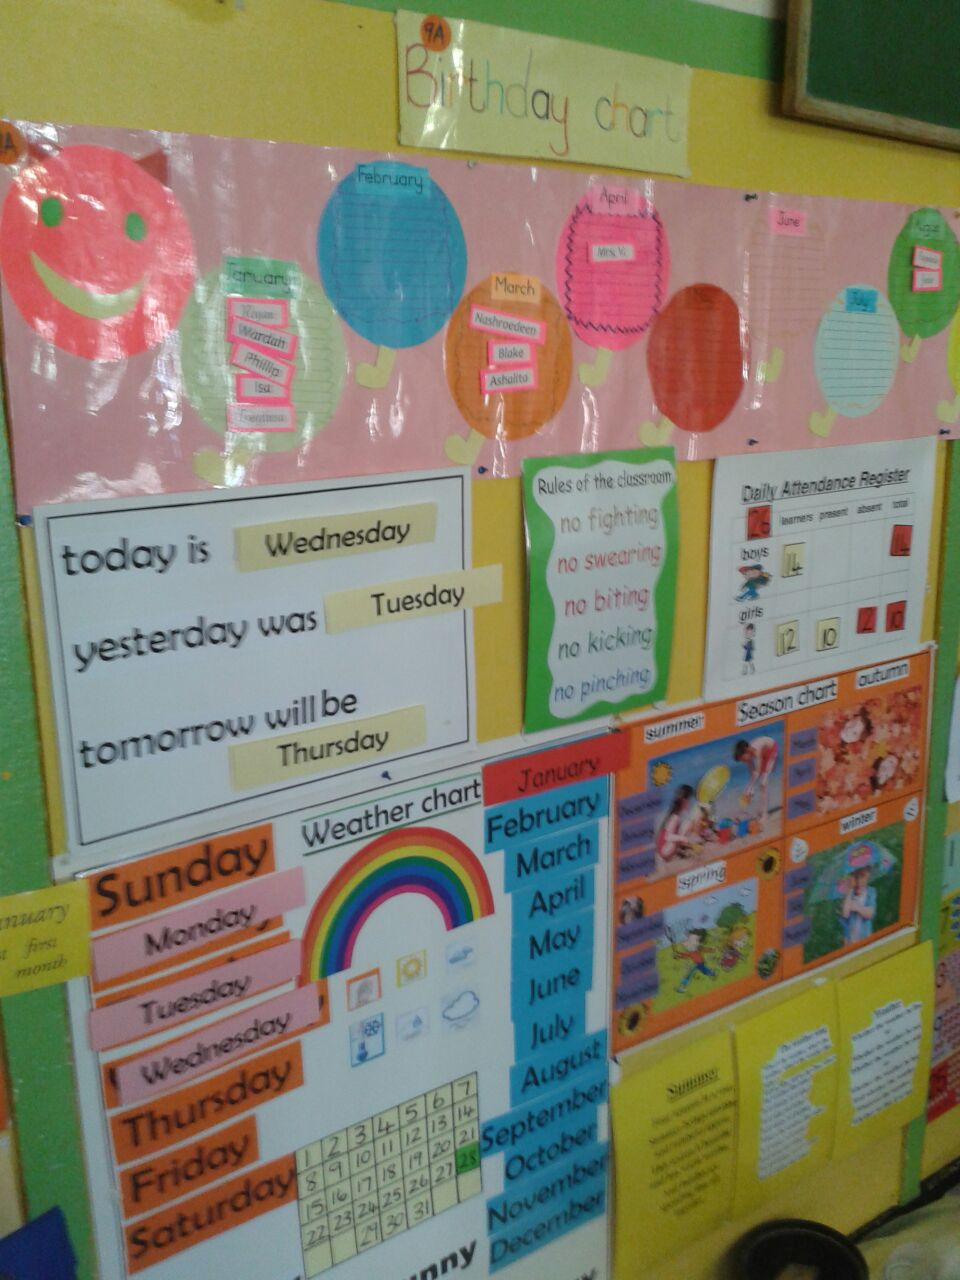 use of visual aides in the modern classroom essay Fact: visual aids in the classroom improve learning by up to 400 percent how smart are you is now irrelevant a more powerful new question is, how are you smart.